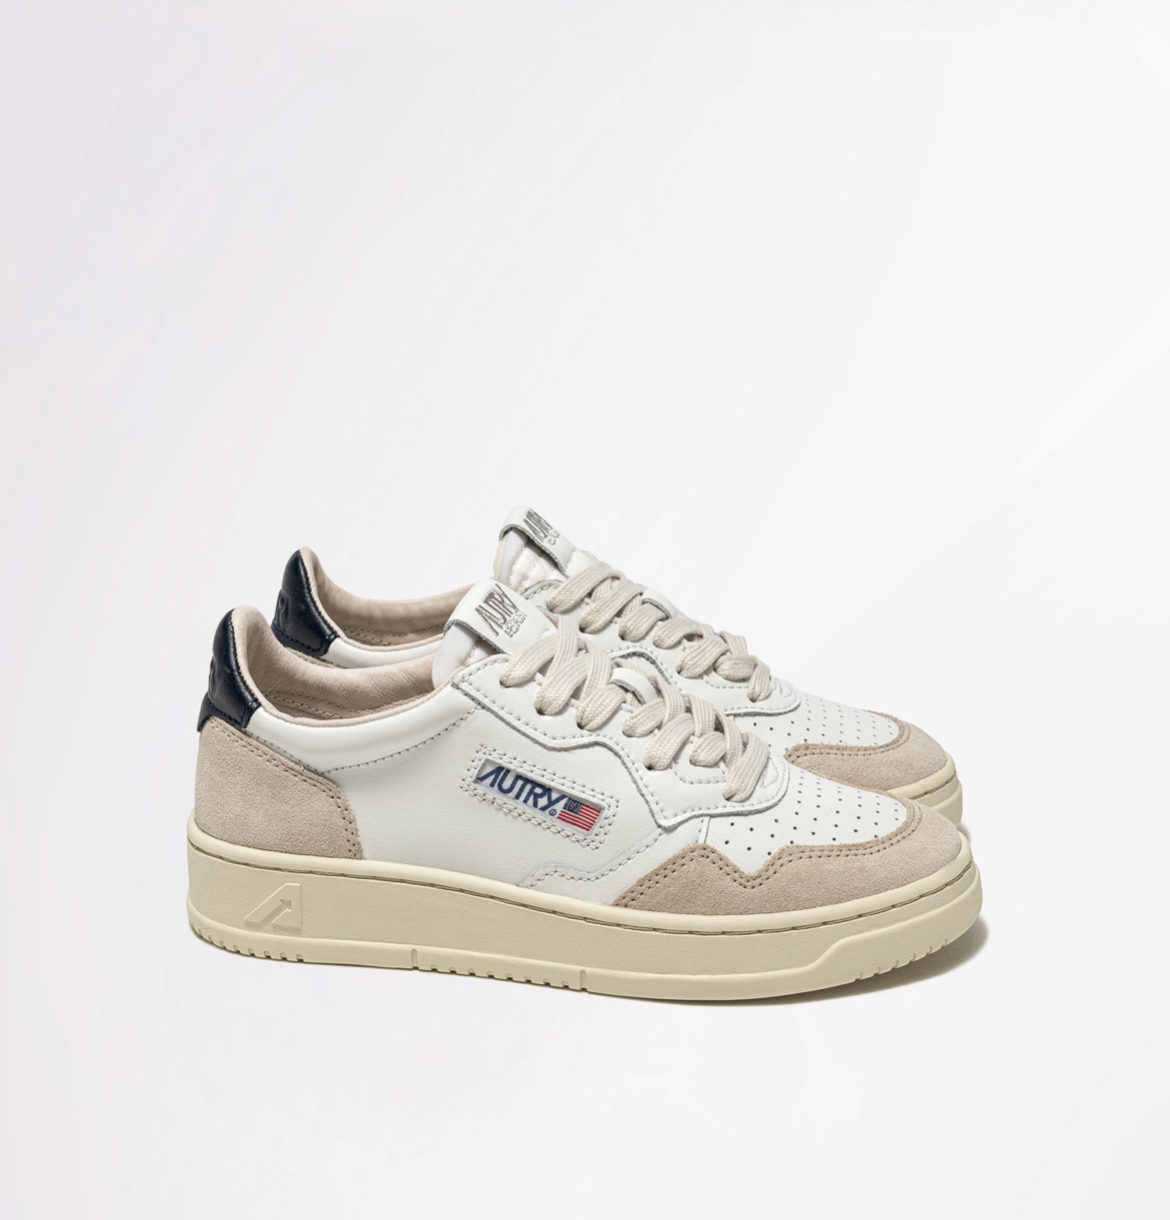 AUTRY MEDALIST LOW SNEAKERS IN LEATHER AND SUEDE COLOR WHITE BLUE